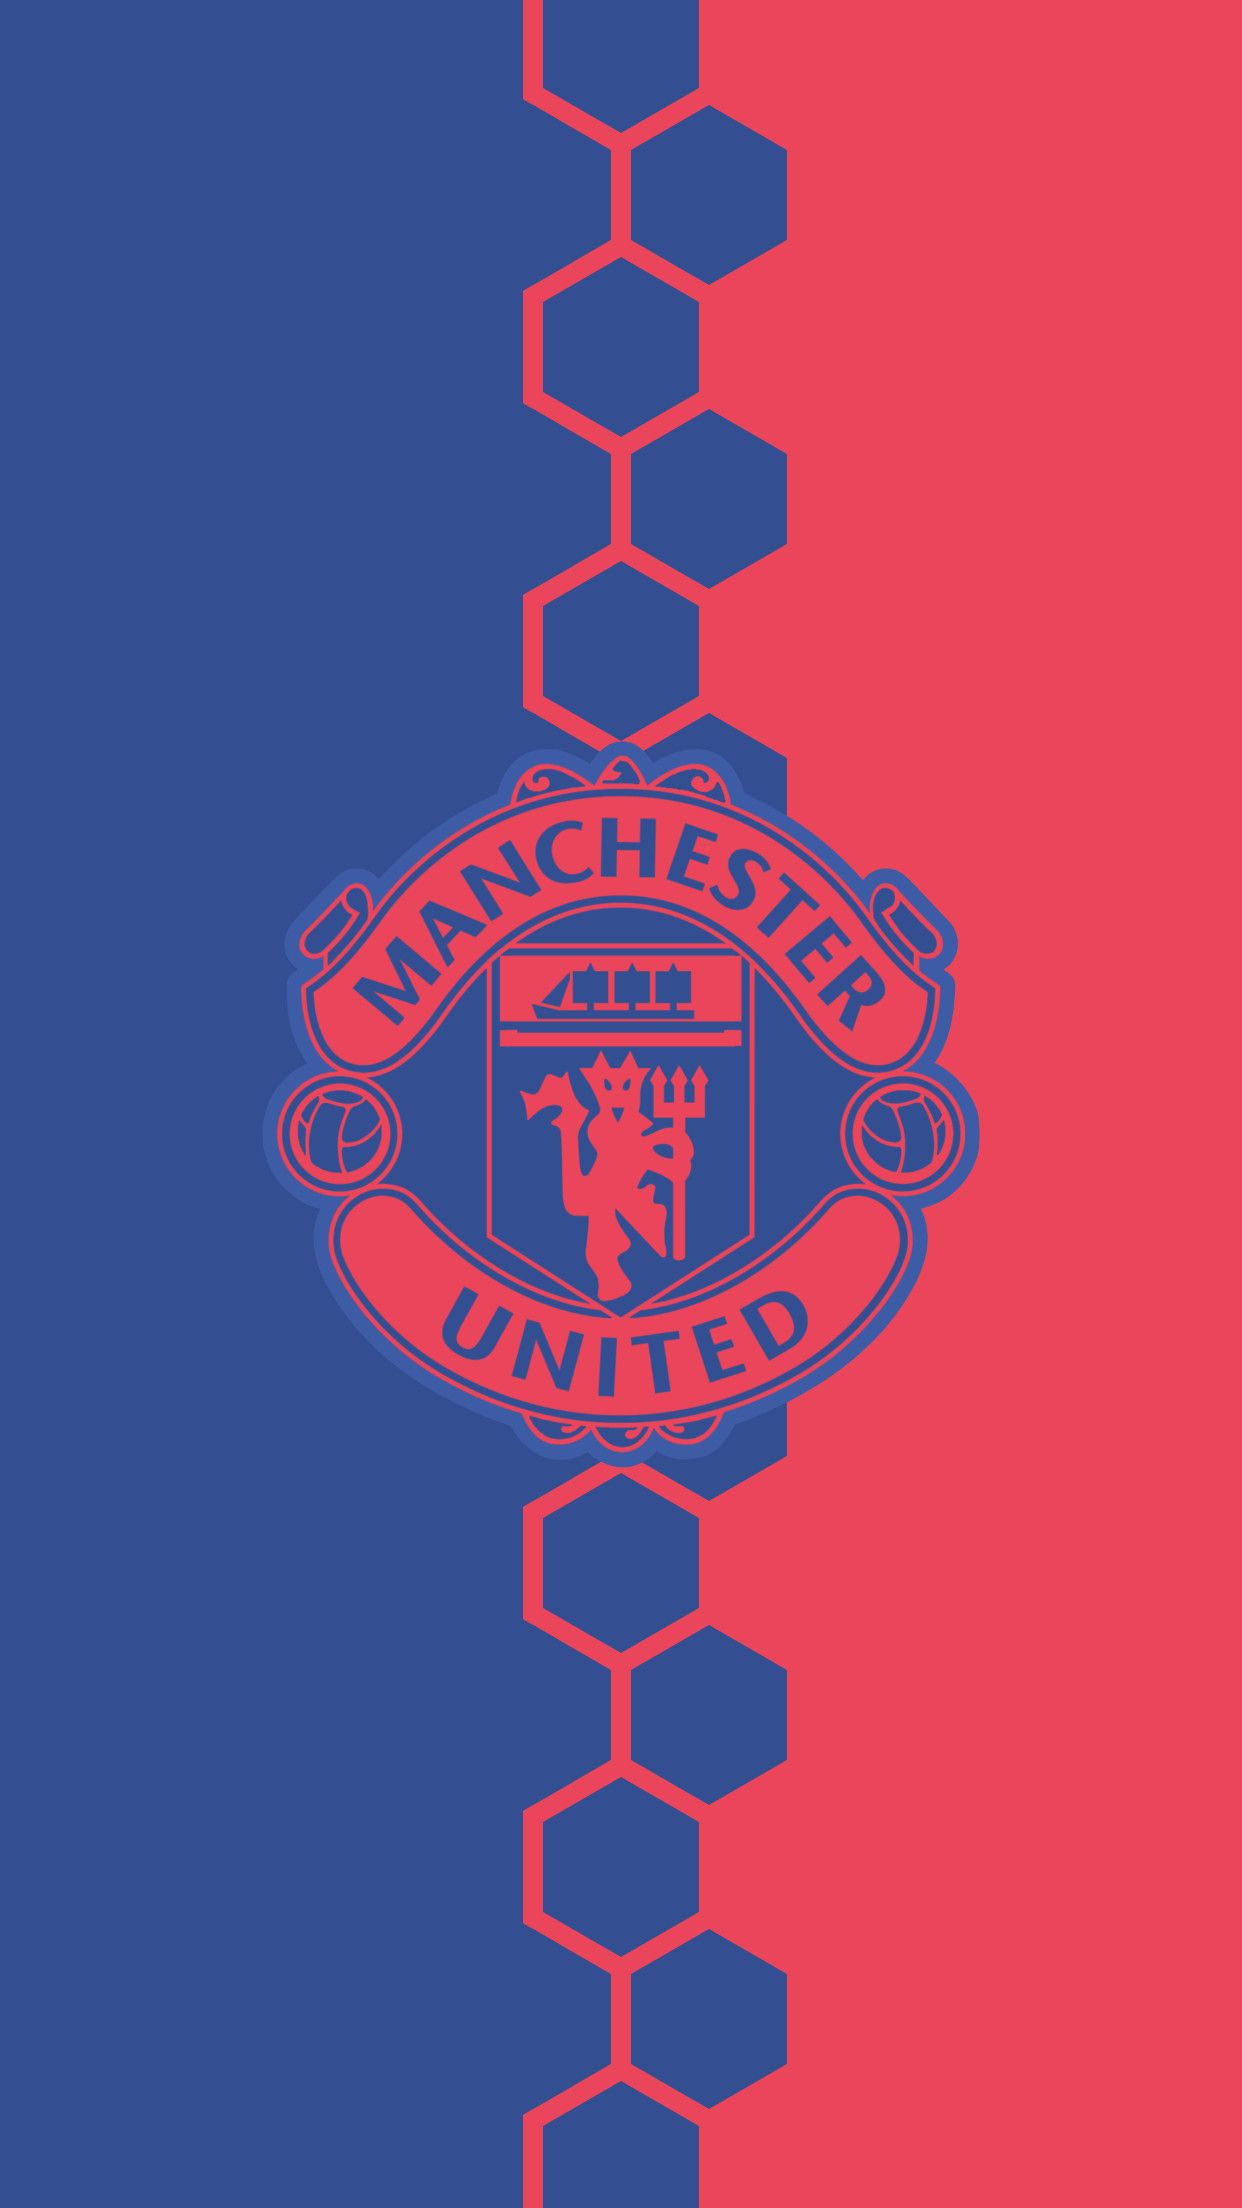 1242x2208 Football Wallpaper Man United Mobile Wallpaper Premier League Manchester United Basil Iphone 6 Soccer Martial Arts Bintang Sepak Bola Gambar